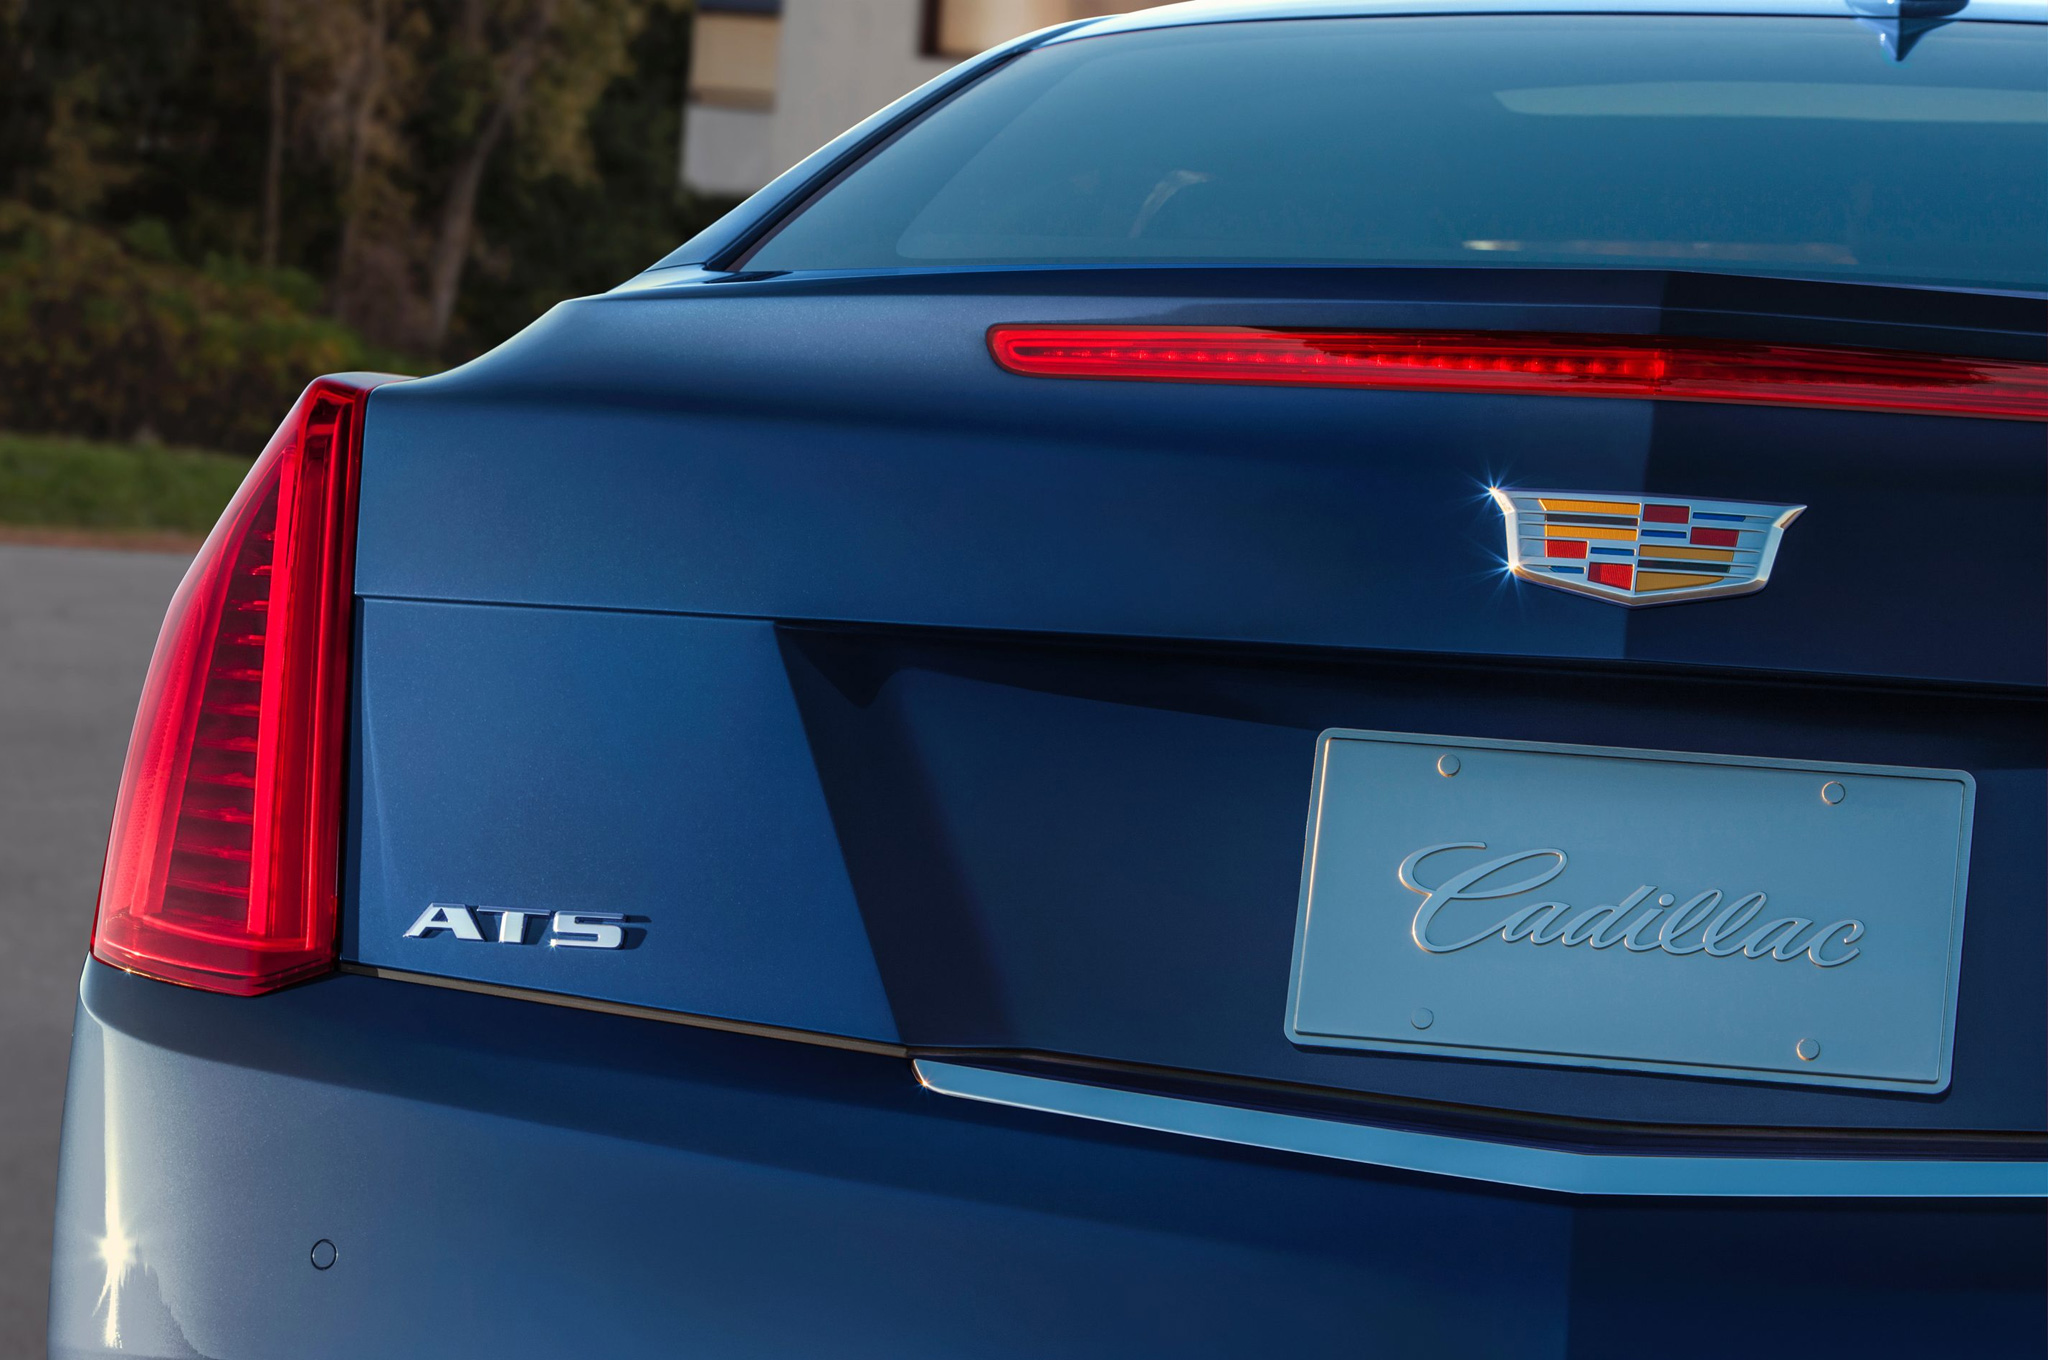 2015 Cadillac Ats Coupe Rear Lamp Close Up (Photo 19 of 21)